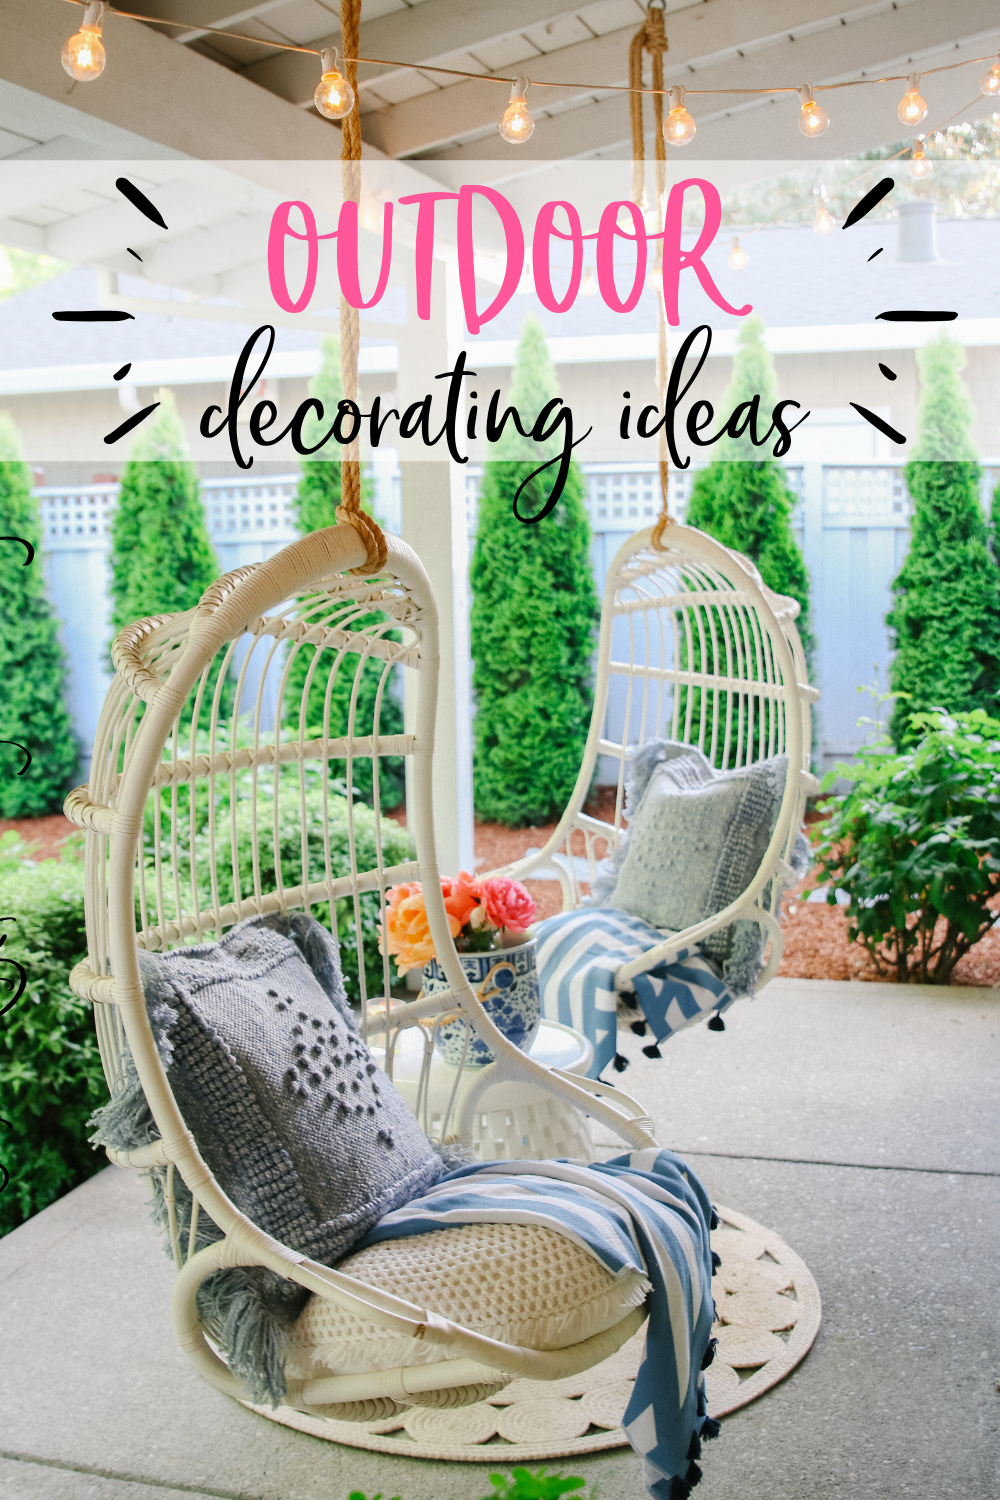 Outdoor decorating Ideas: My Summer Porch and Patio - Modern ...